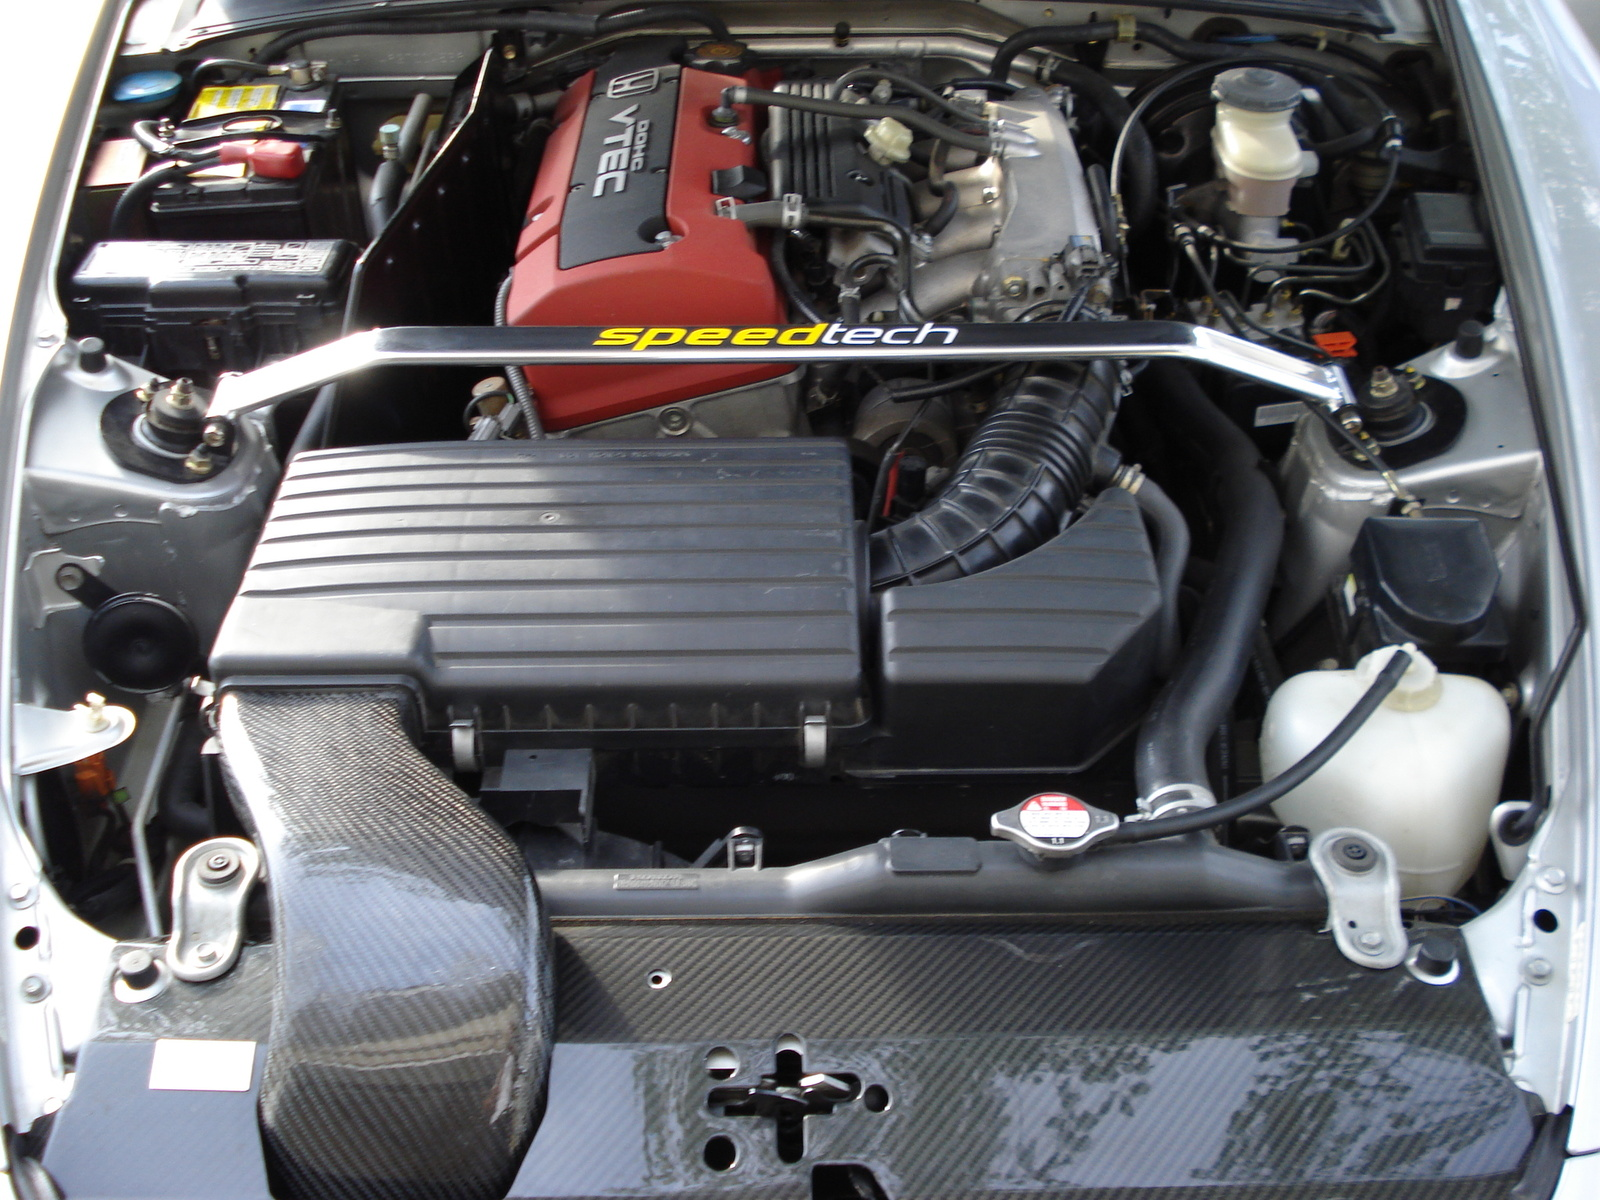 2002 Honda S2000 Base picture, engine